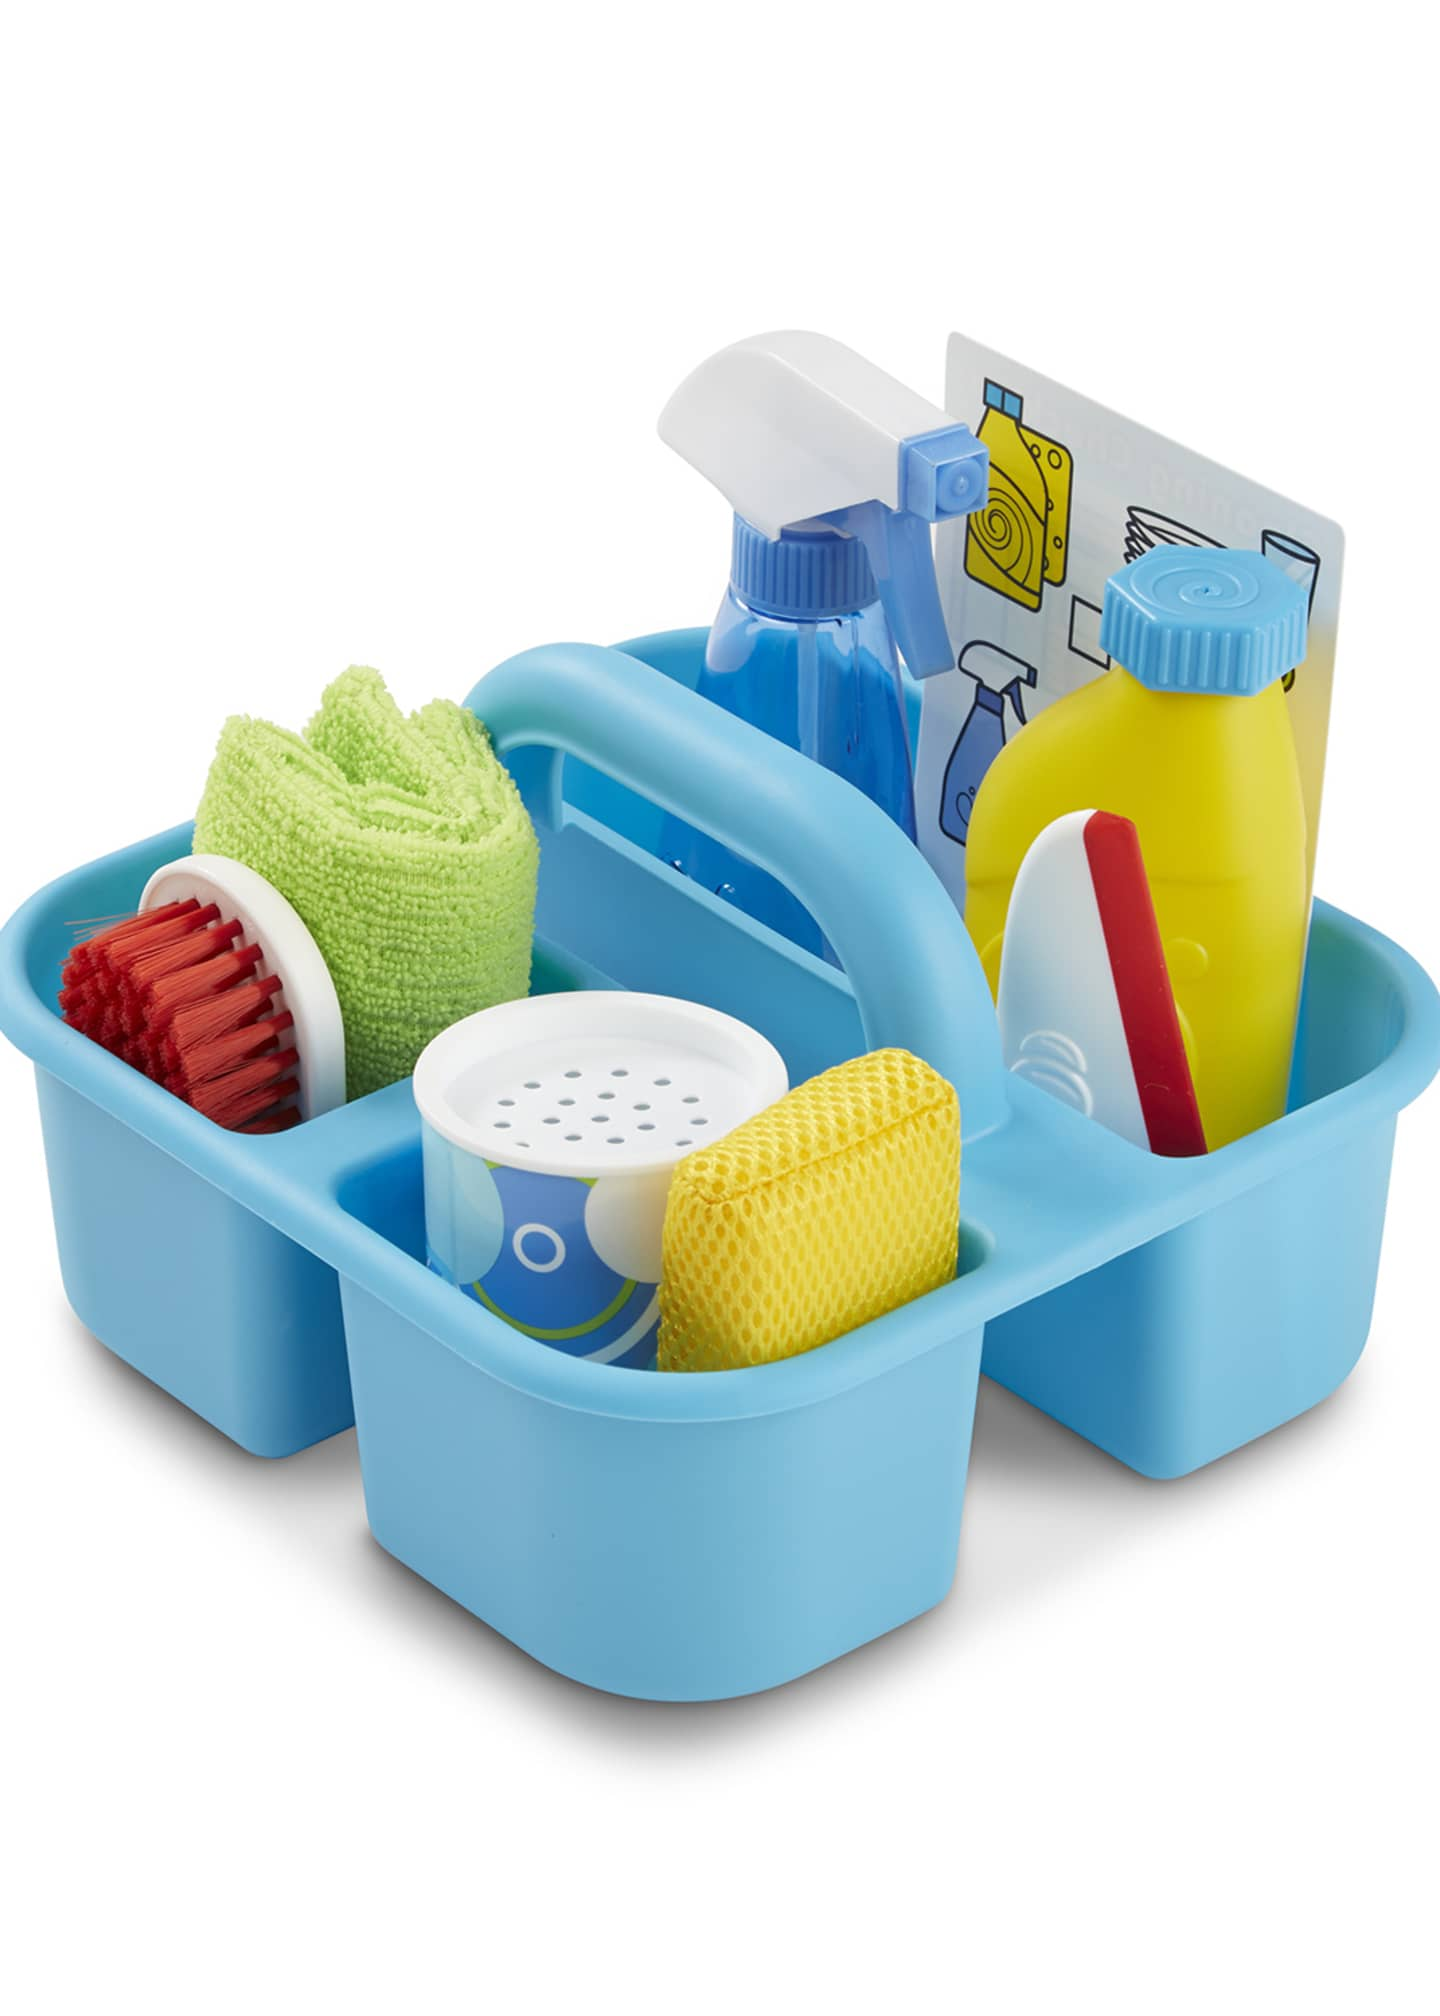 Image 1 of 2: Let's Play House Spray, Squirt & Squeegee Play Set